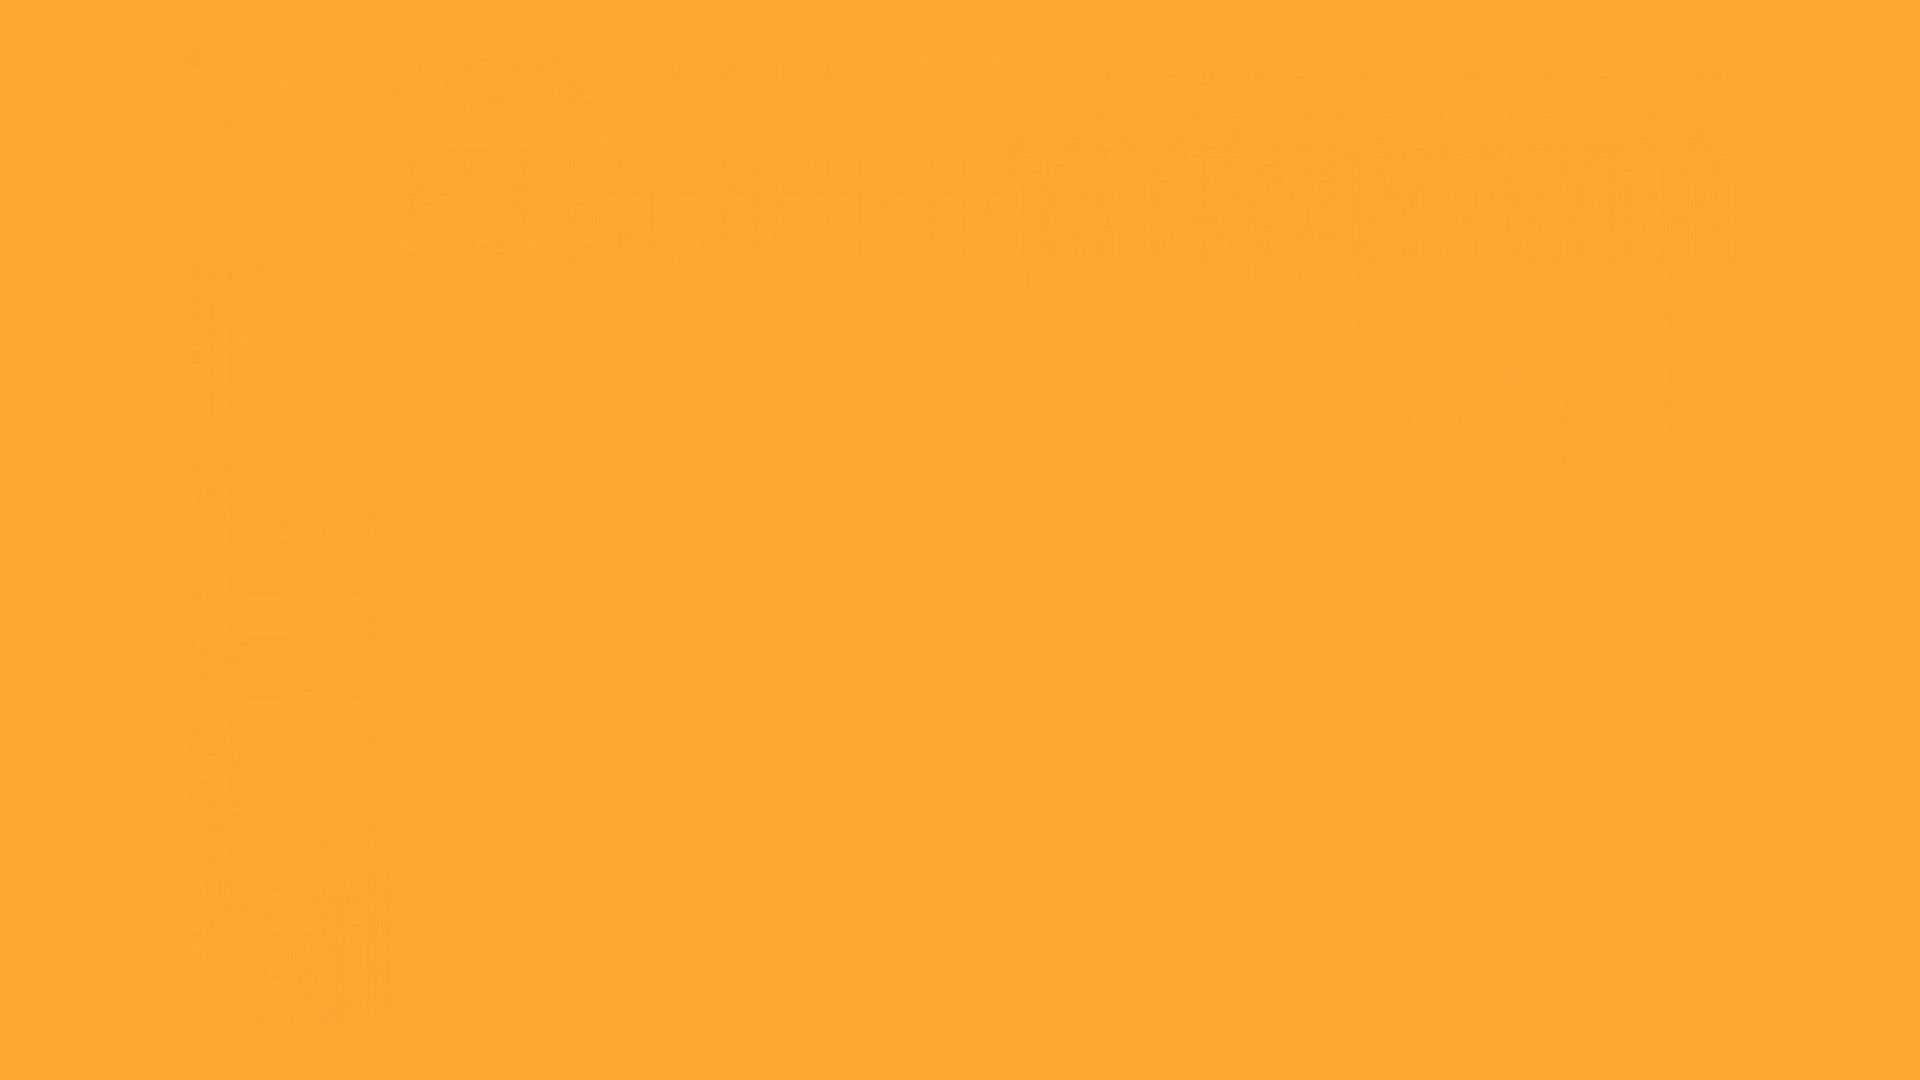 Best Plain Yellow Wallpaper Orange Paint Colors Solid Color